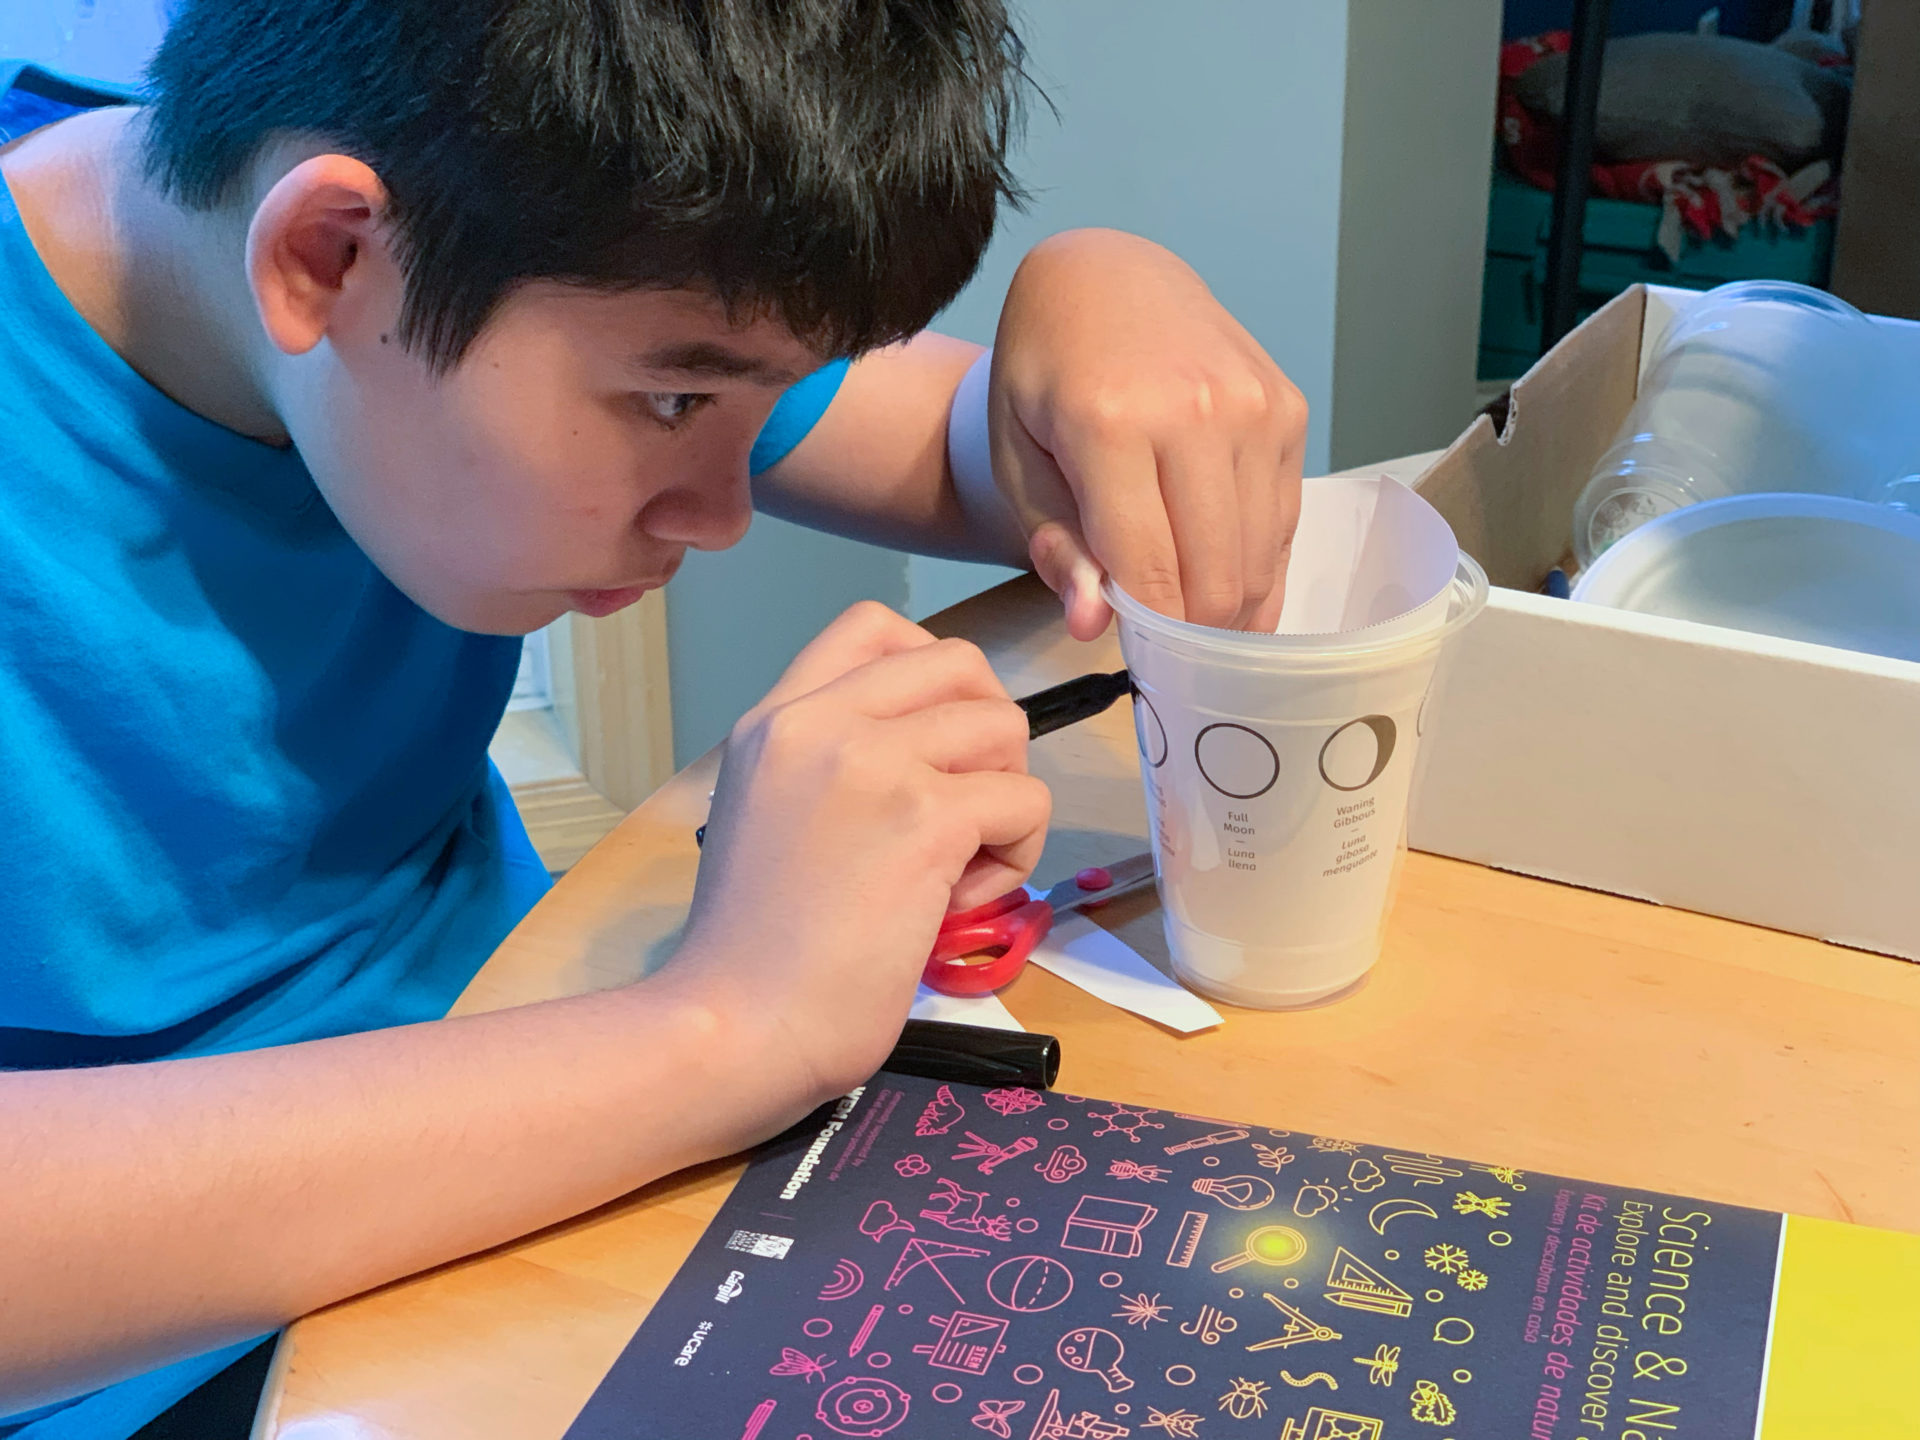 Child marking a plastic cup